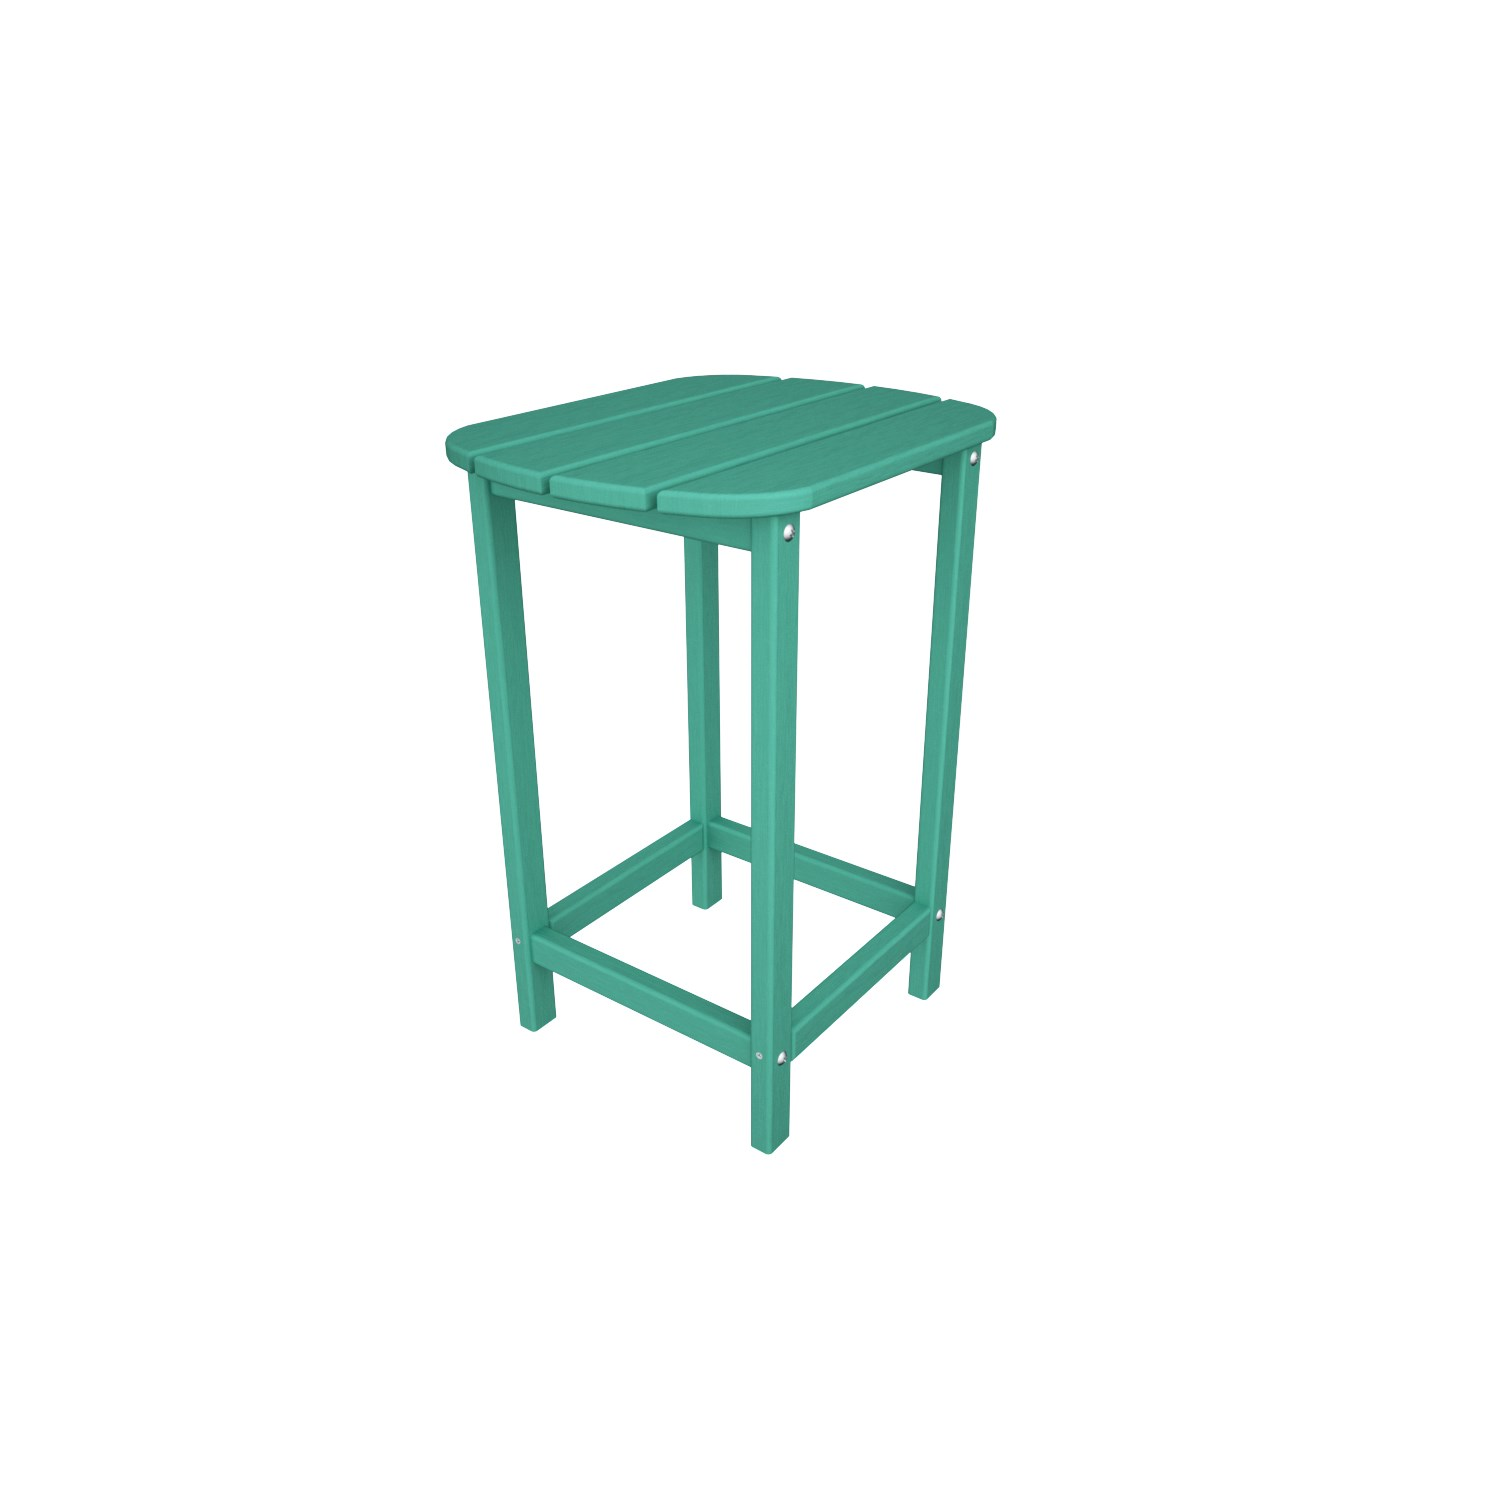 polywood south beach counter outdoor side table the white green tap expand plastic garden coffee small student desk wood farmhouse barn door bar target shower curtain rod narrow